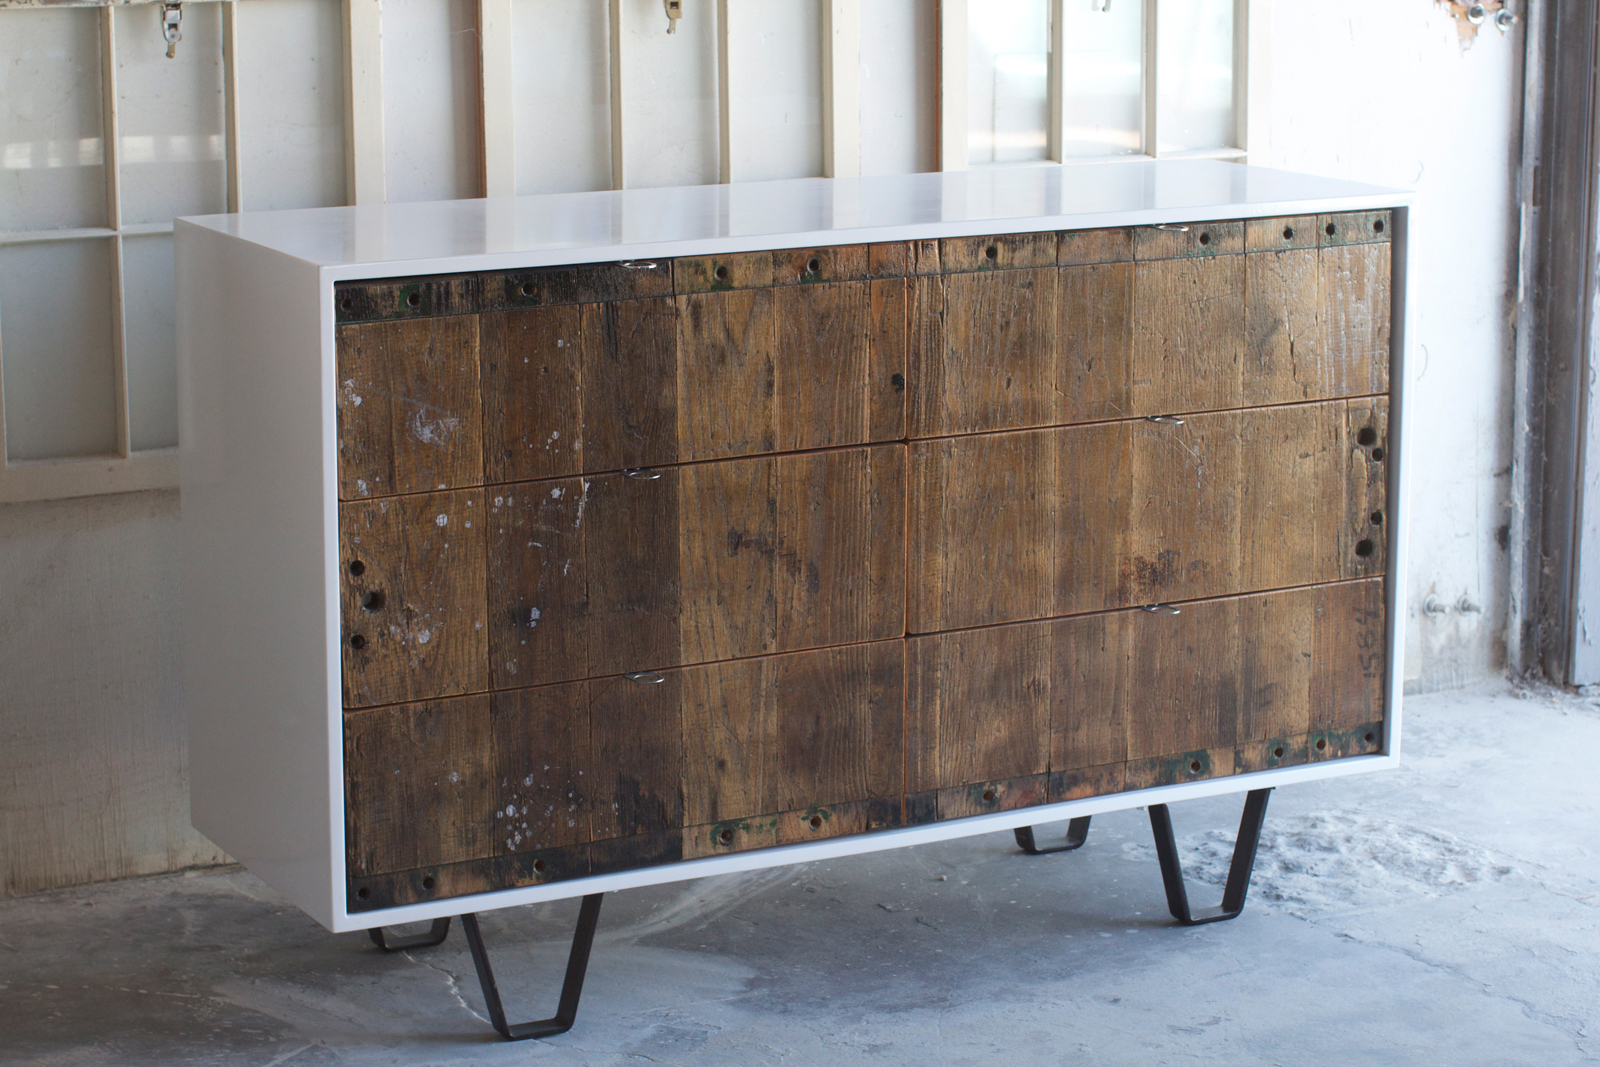 """This console illustrates the contrast of old an new materials found in Fin Art's work. One of their influences is Brooklyn-based furniture maker <a href=""""http://www.palosamko.com/"""">Palo Samko</a>, who has a similar aesthetic."""